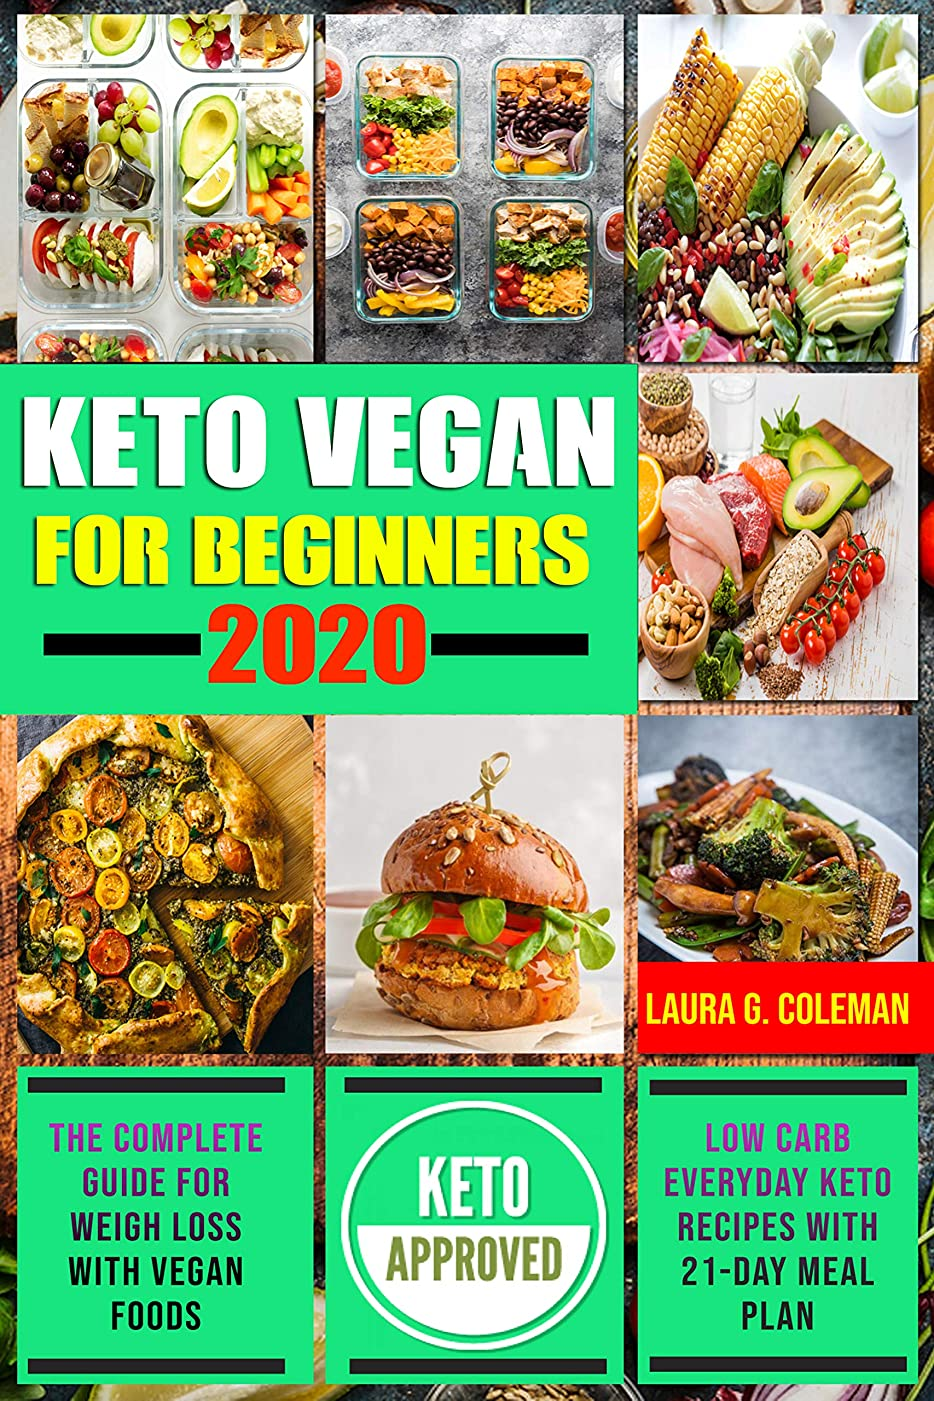 Keto Vegan For Beginners #2020: The Complete guide for weigh loss with Vegan Foods,Low Carb Everyday Keto Recipes with 21-Day Meal Plan (English Edition)